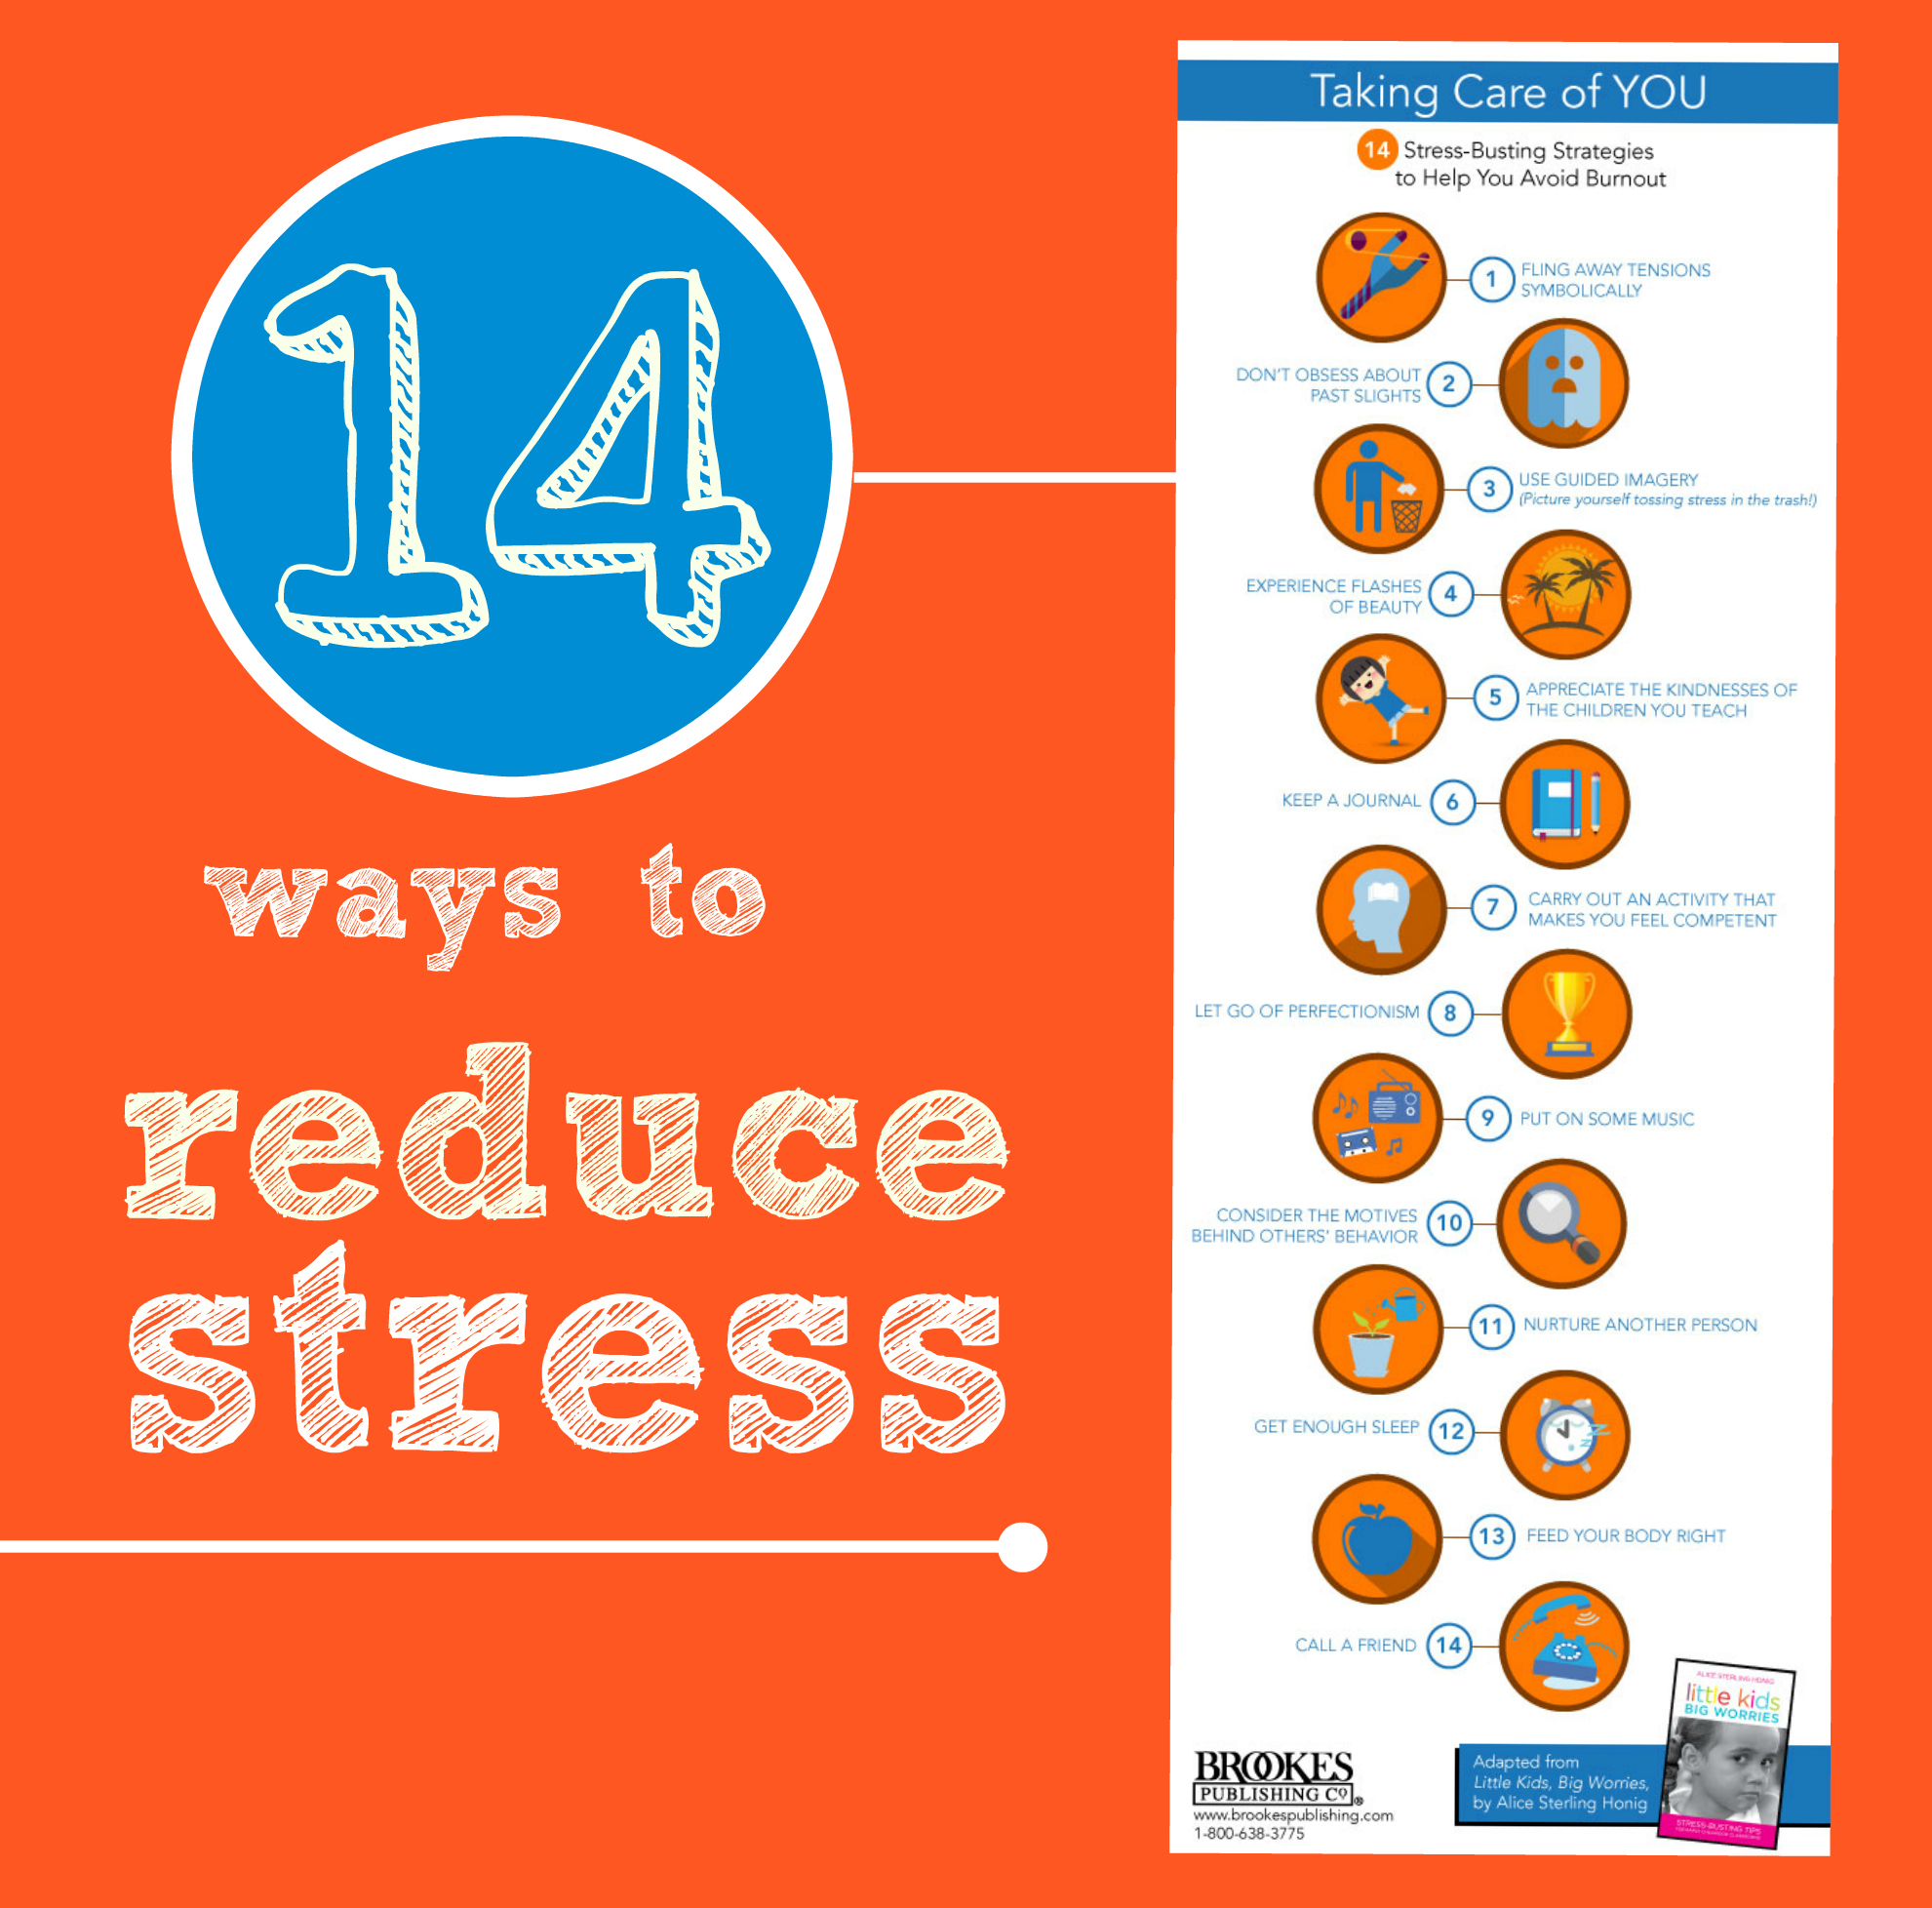 stressbusting tips for getting through the festive season 4